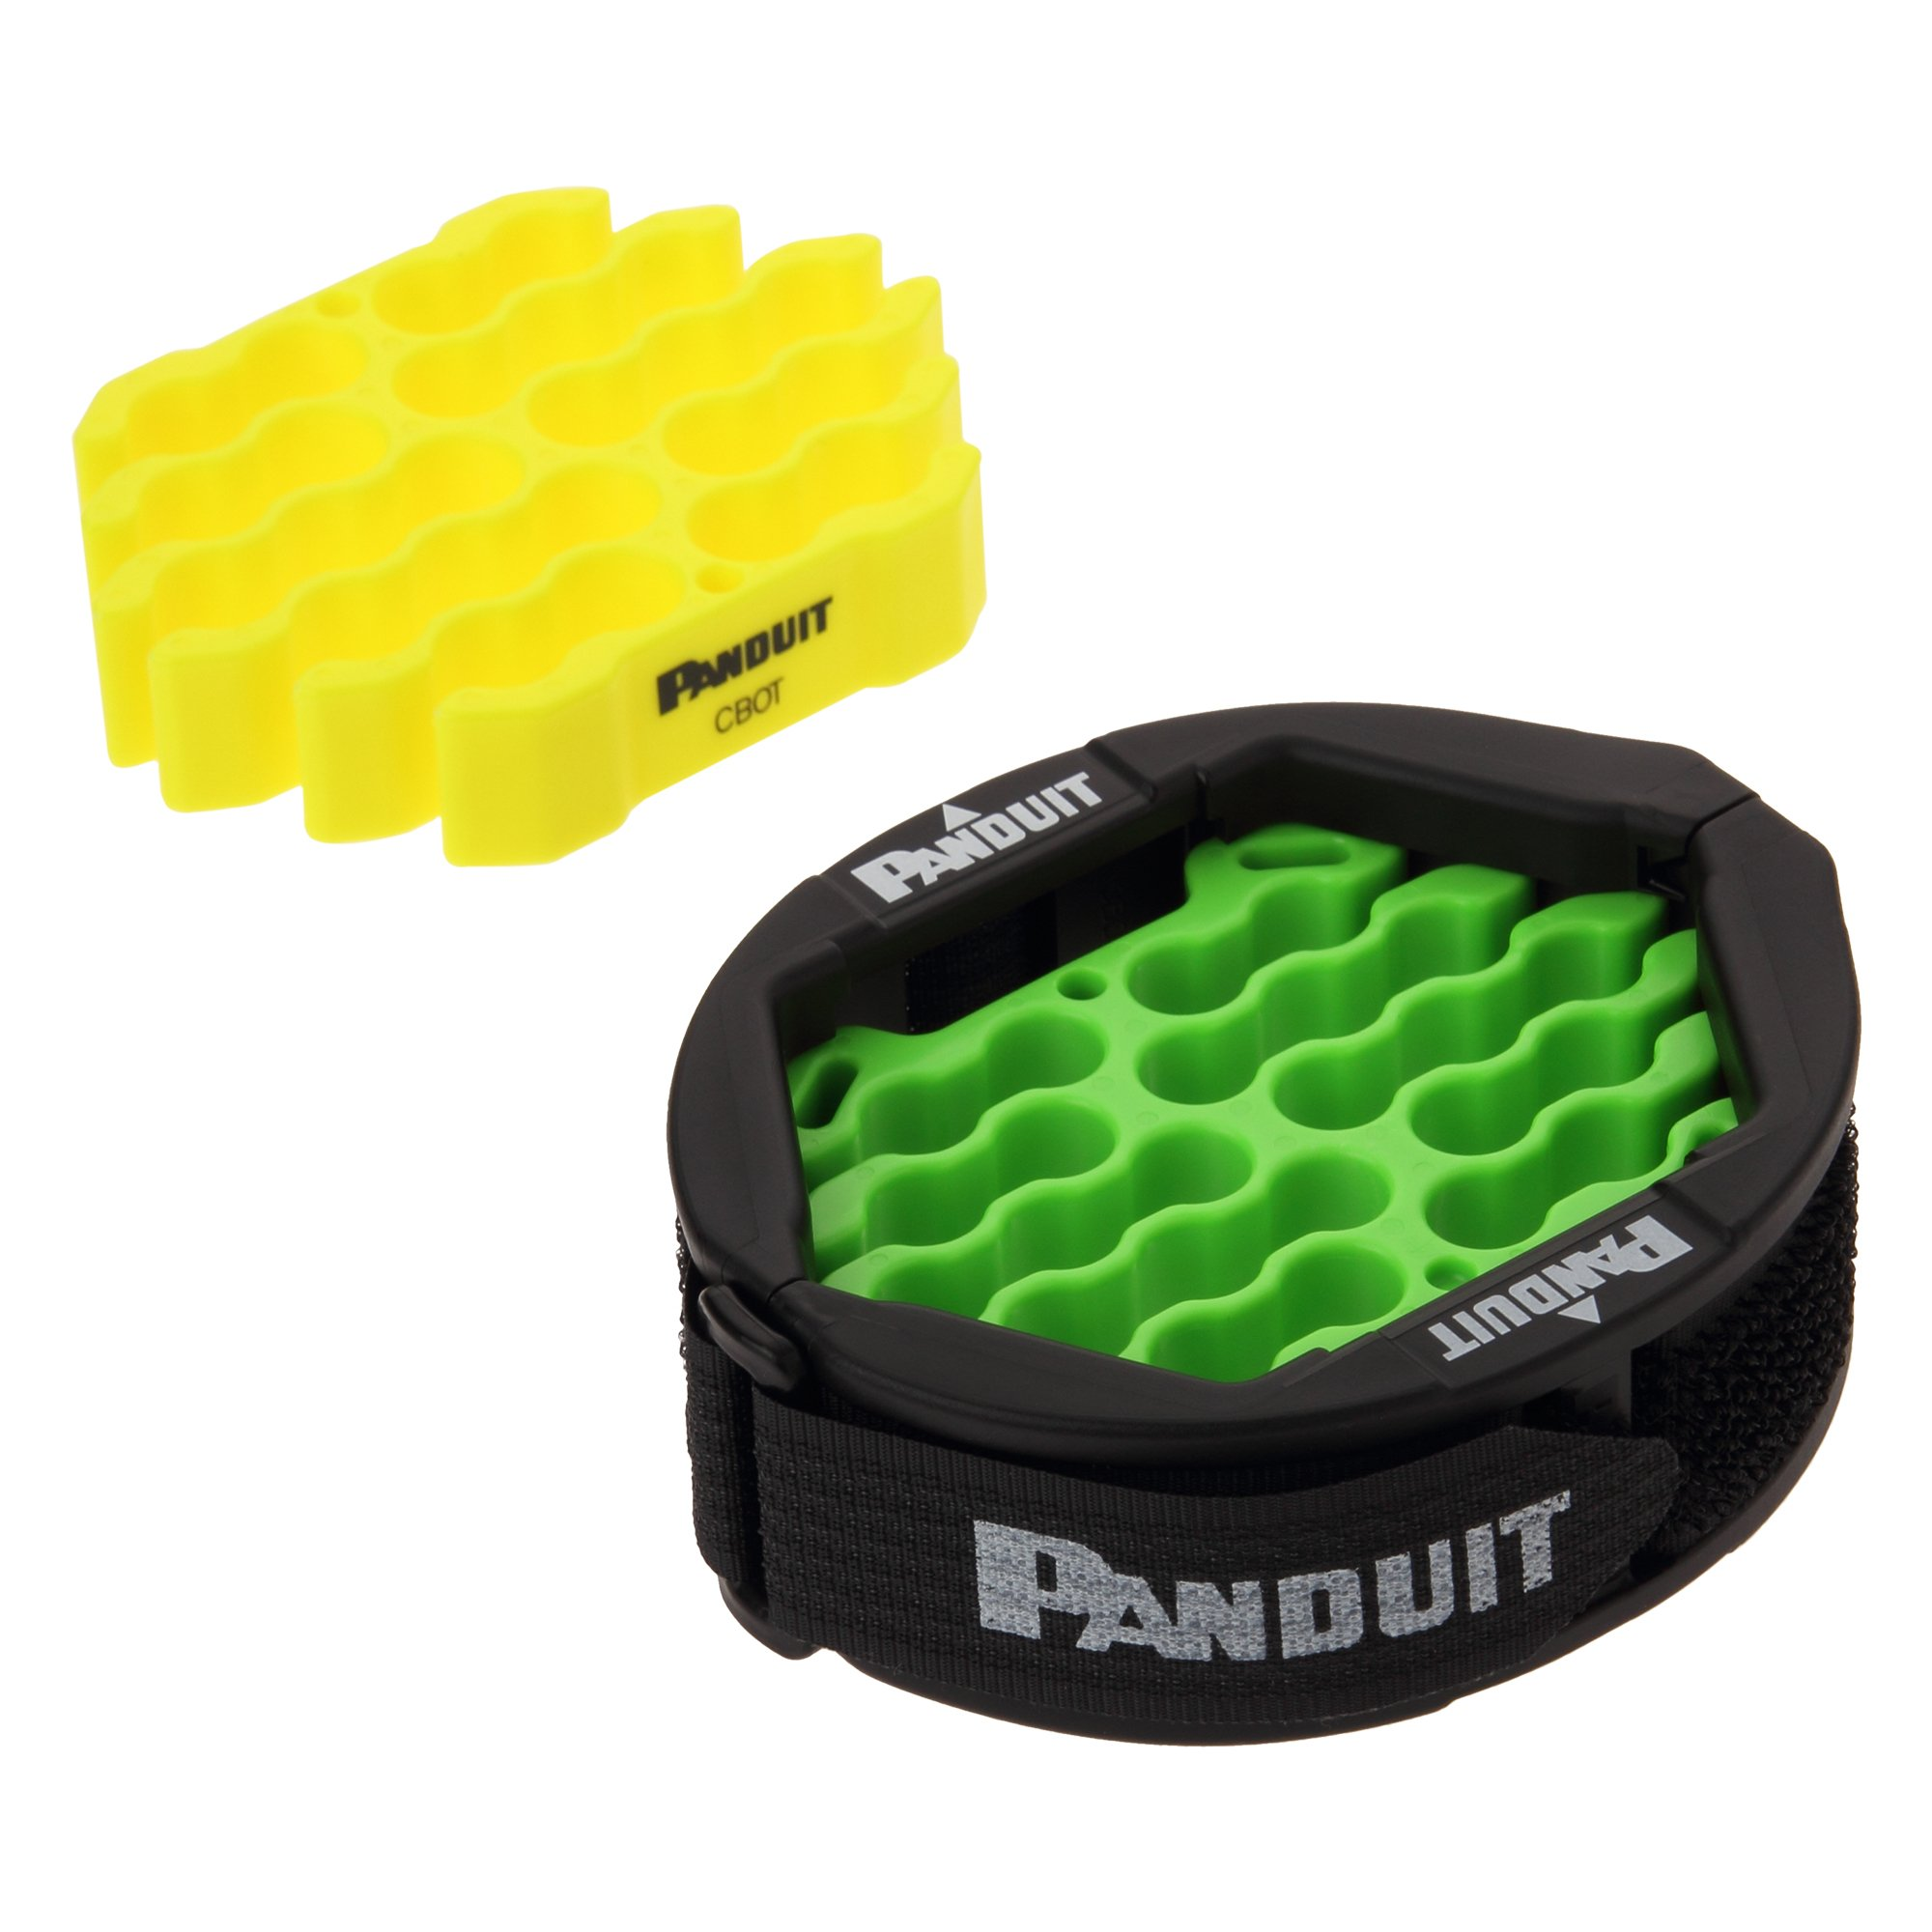 Panduit CBOT24K Cable Organizing Kit, Tool Kit Includes: Jacket Cover, Hook and Loop Fastener, Green Cable Organizing Insert, Yellow Cable Organizing Insert